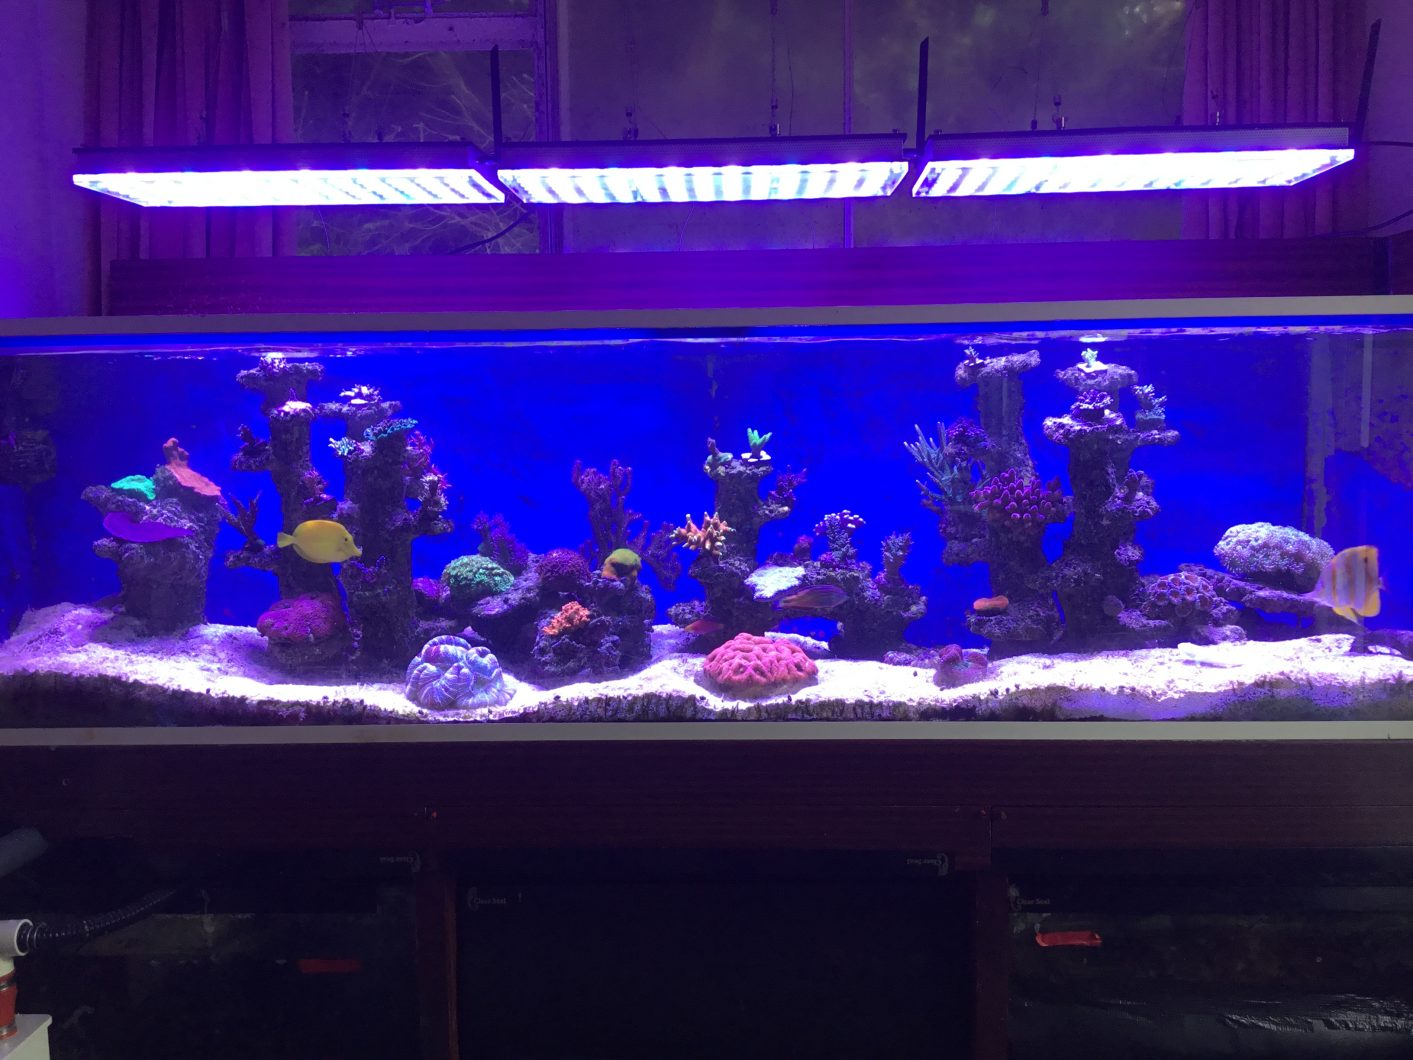 Orphek-atlantik-v4-Reef-akvariet-LED-ljus